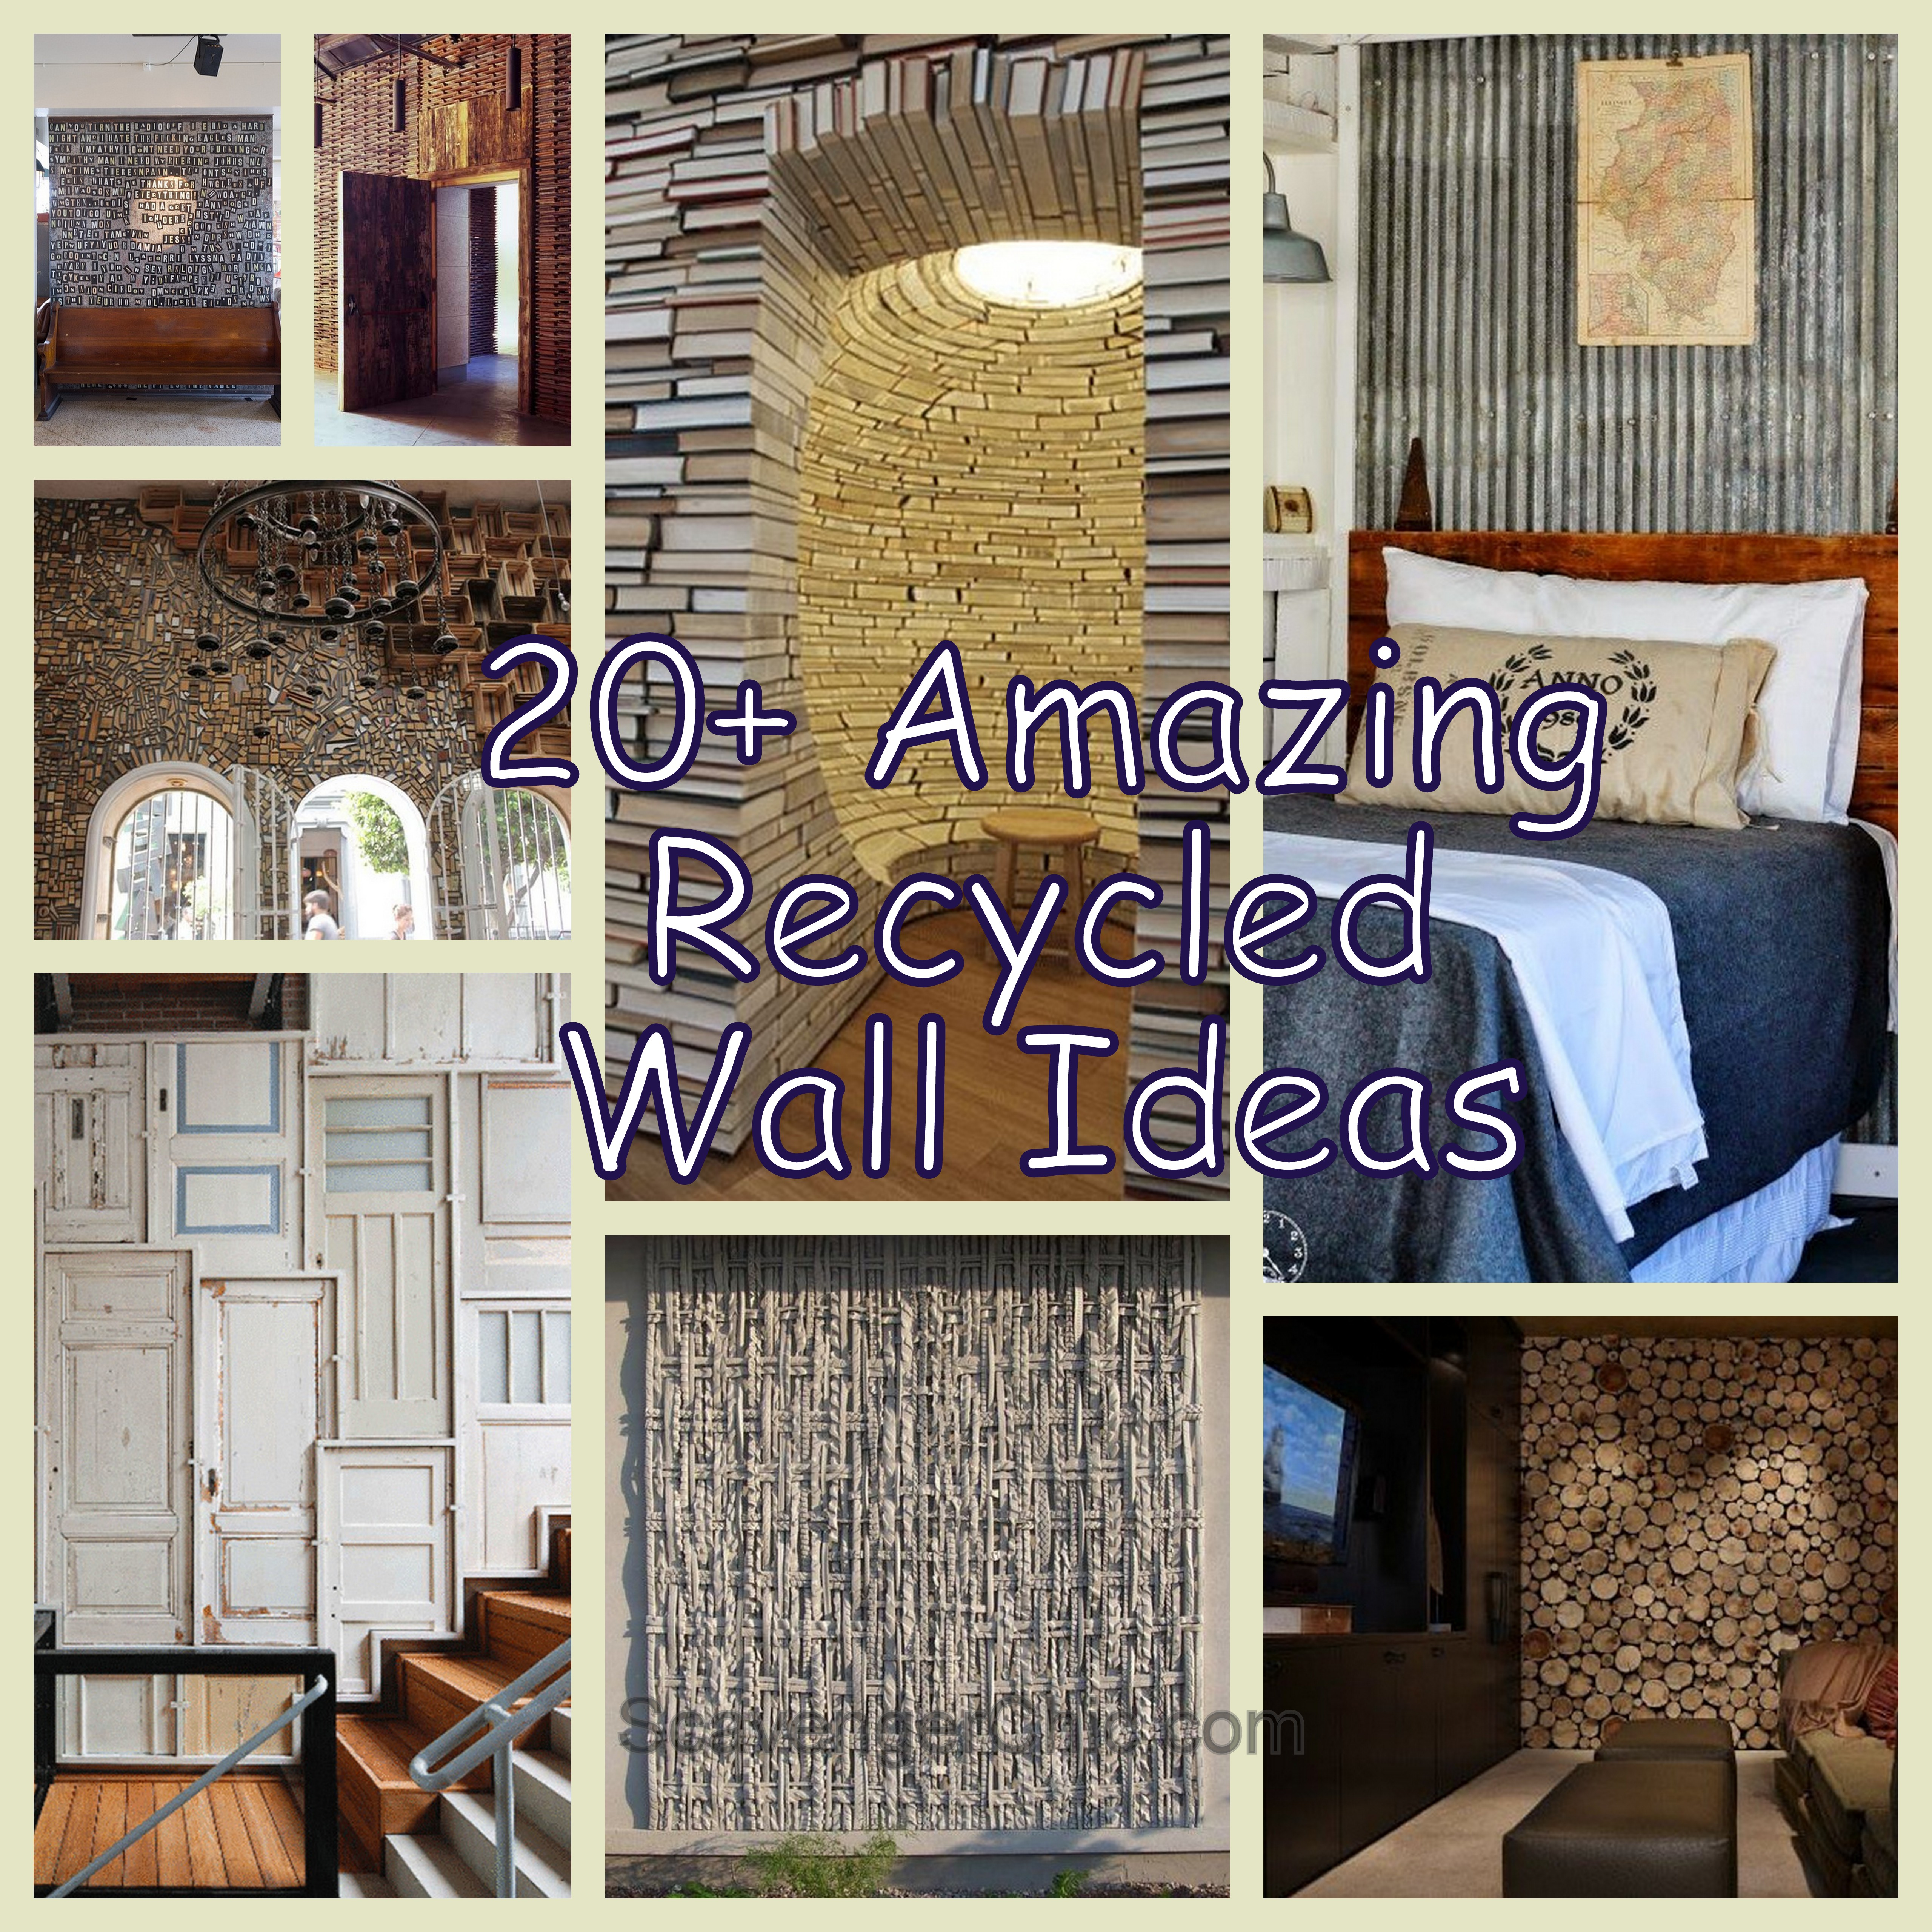 20 Recycling Ideas For Home Decor: 20+ Amazing Recycled Wall Ideas